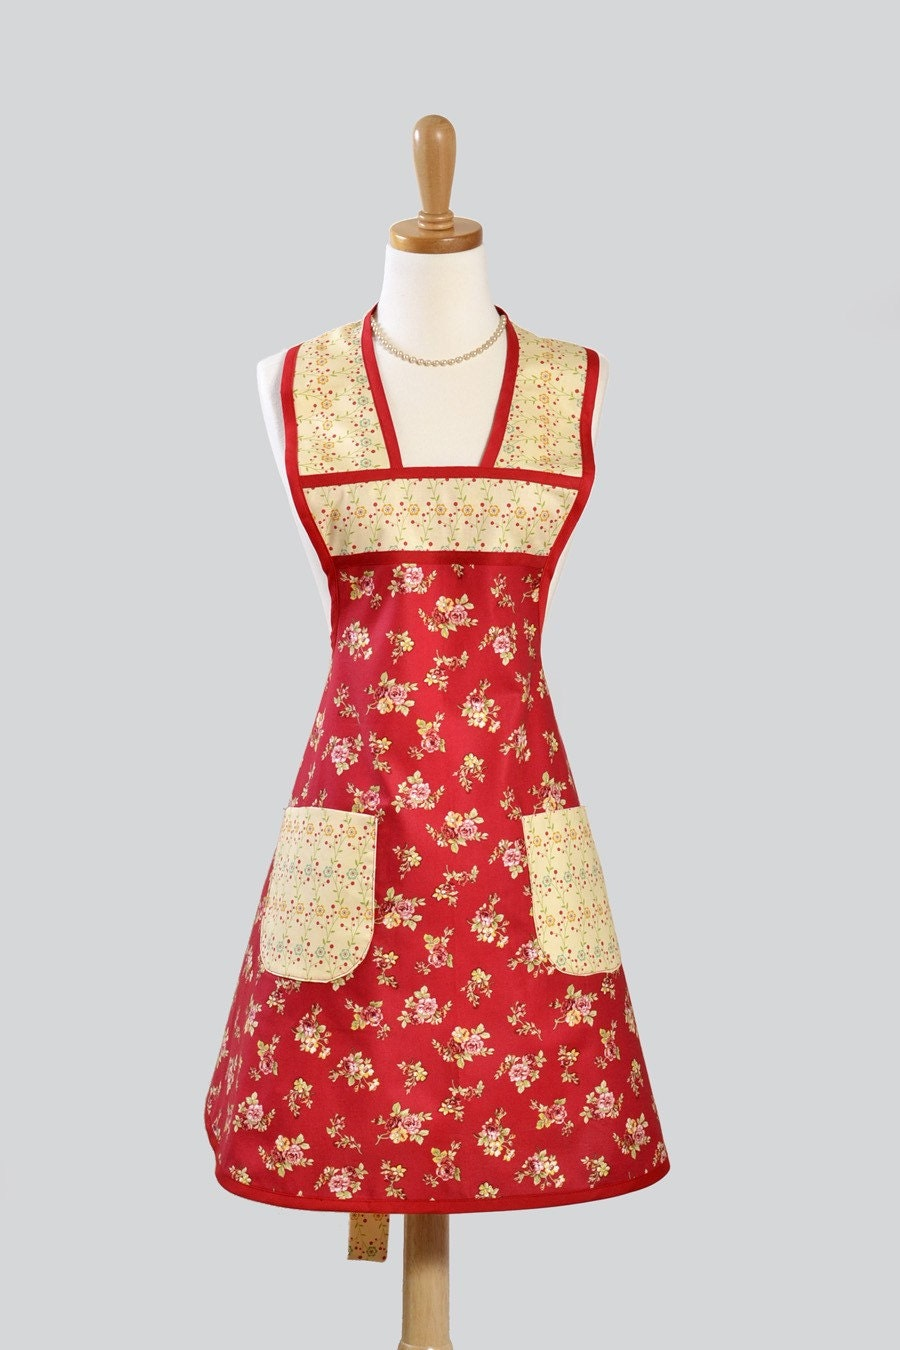 womens vintage inspired apron red is beautiful backdrop for. Black Bedroom Furniture Sets. Home Design Ideas